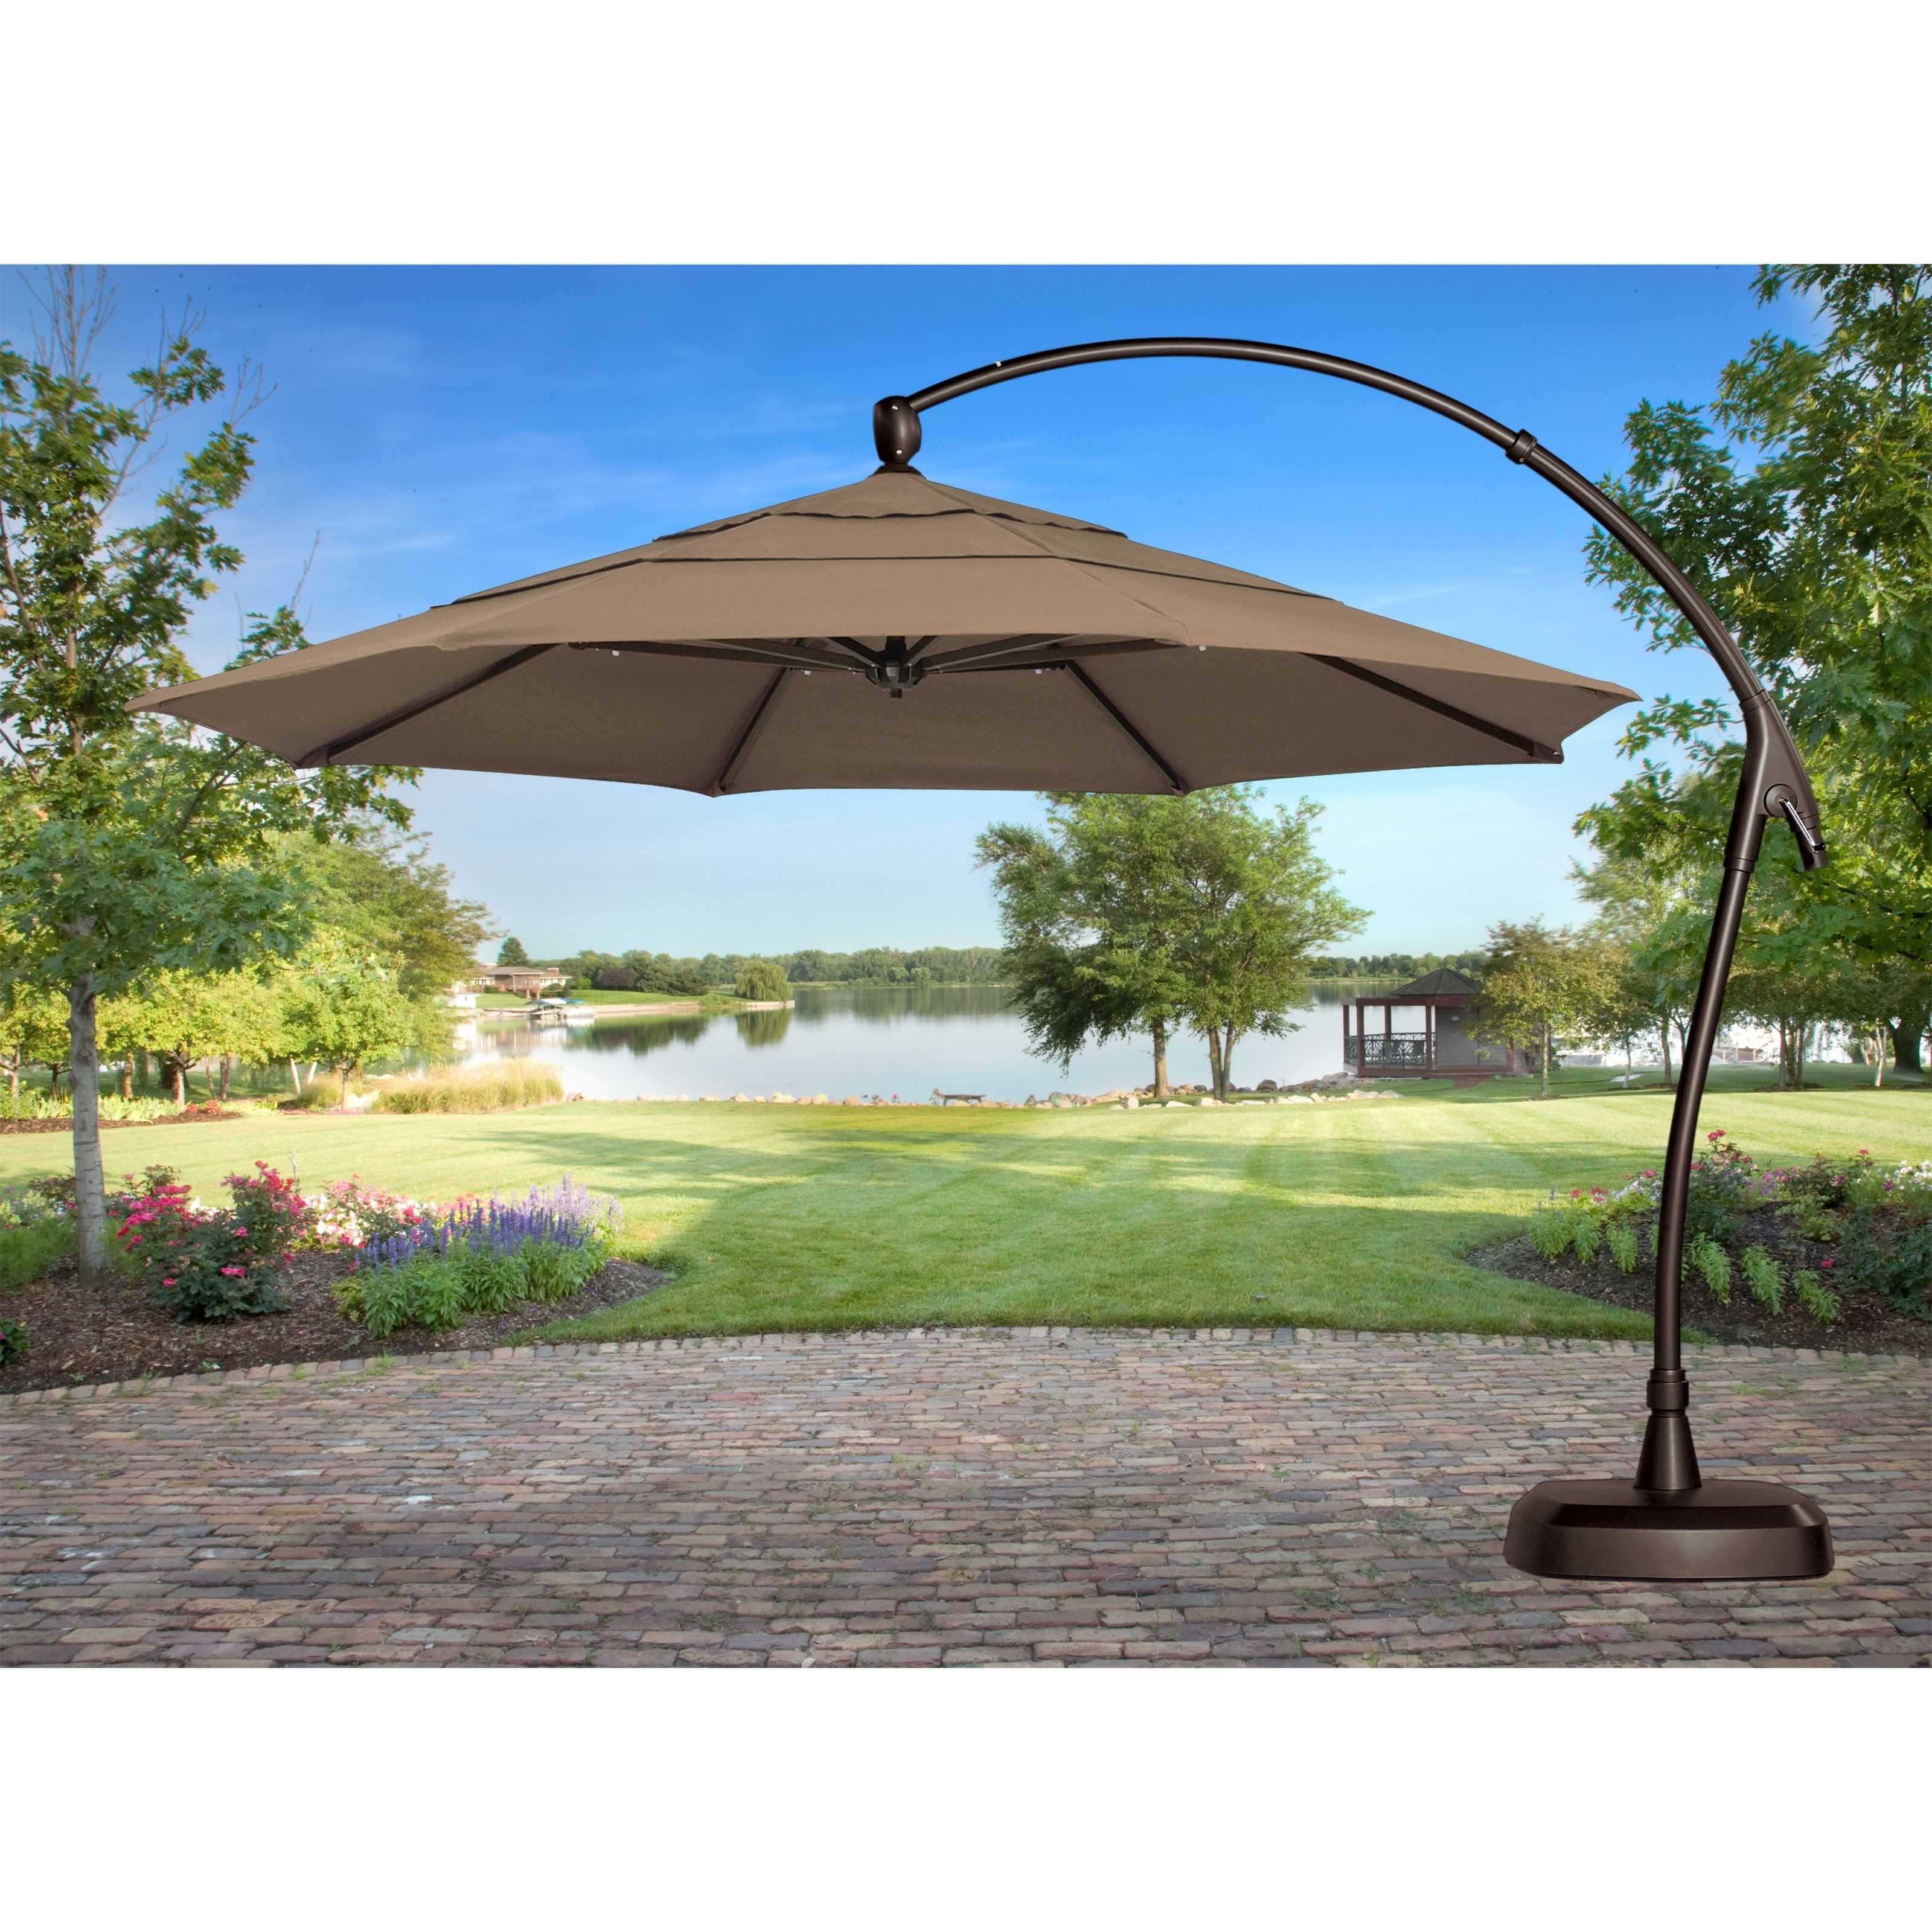 Most Recent Cantilever Patio Umbrella Home Depot F41x About Remodel Most Within Home Depot Patio Umbrellas (View 13 of 20)